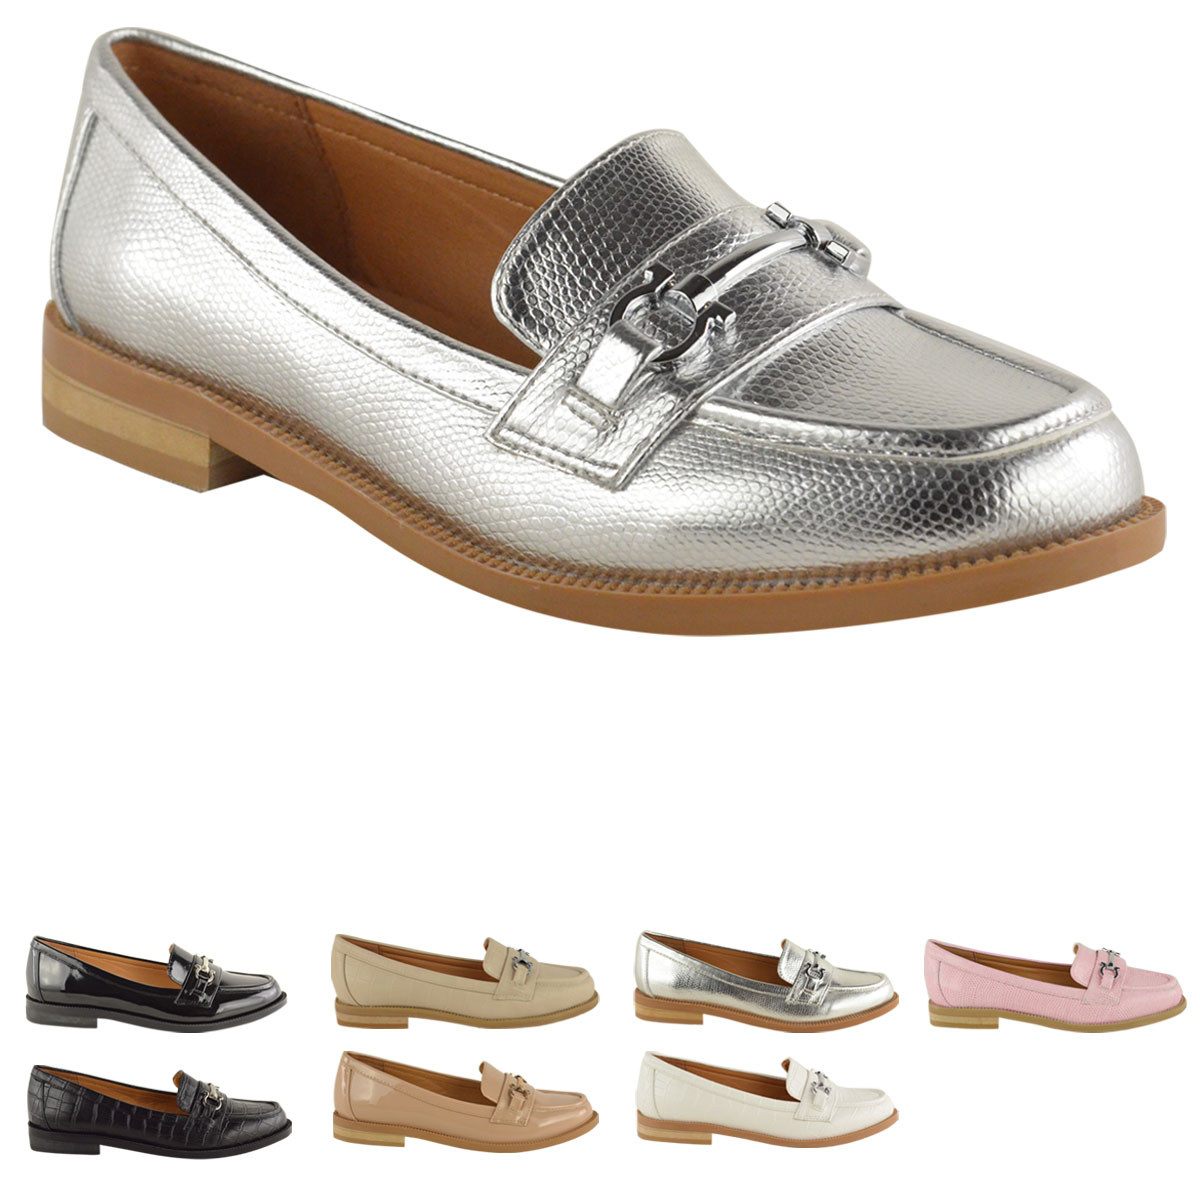 NEW LADIES WOMENS LOAFERS FLAT OFFICE WORK SCHOOL SMART FORMAL CASUAL SHOES SIZE | EBay